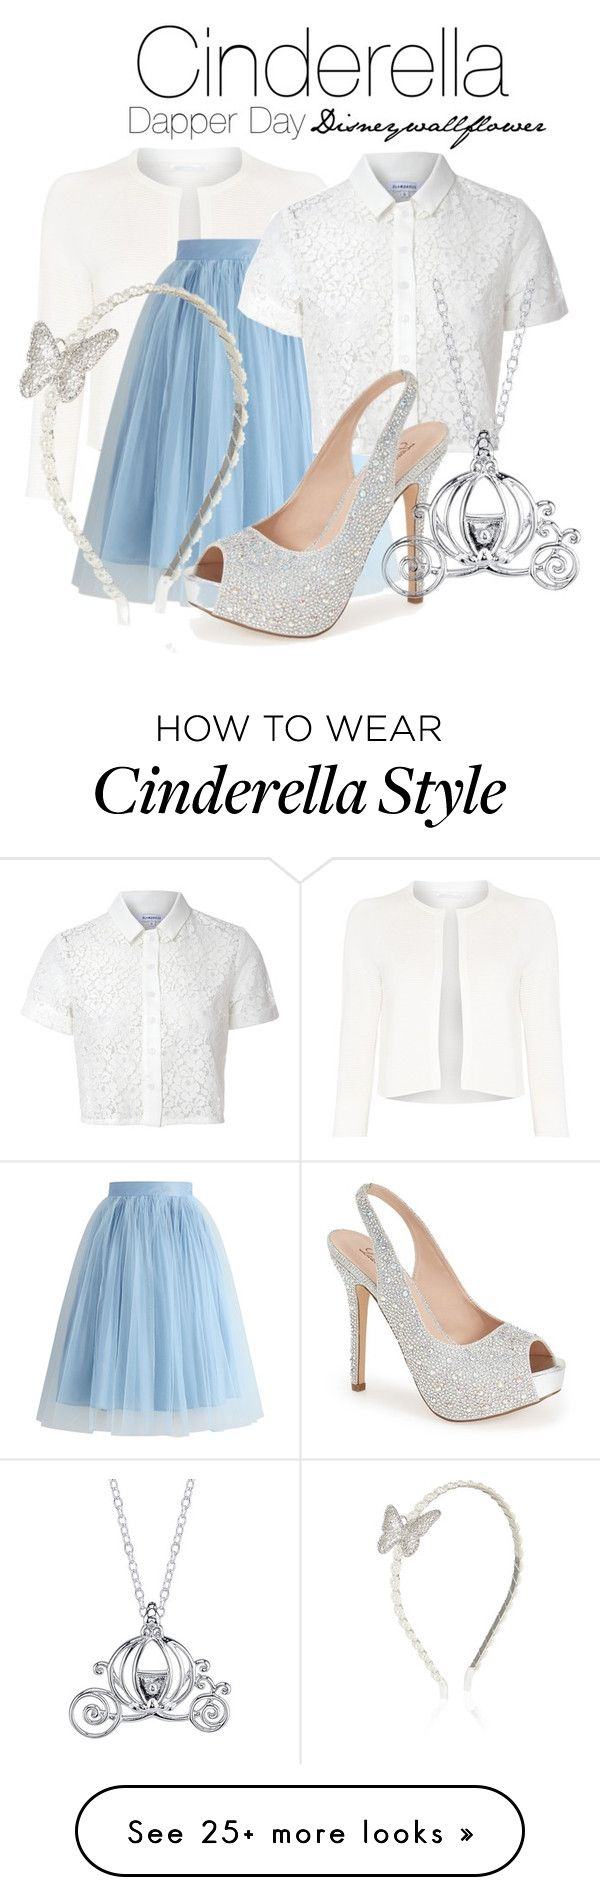 Cinderella- Dapper Day by disneywallflower on Polyvore featuring HUGO, Chicwish, Glamorous, Lauren Lorraine, Disney and Monsoon alles für Ihren Erfolg - www.ratsucher.de